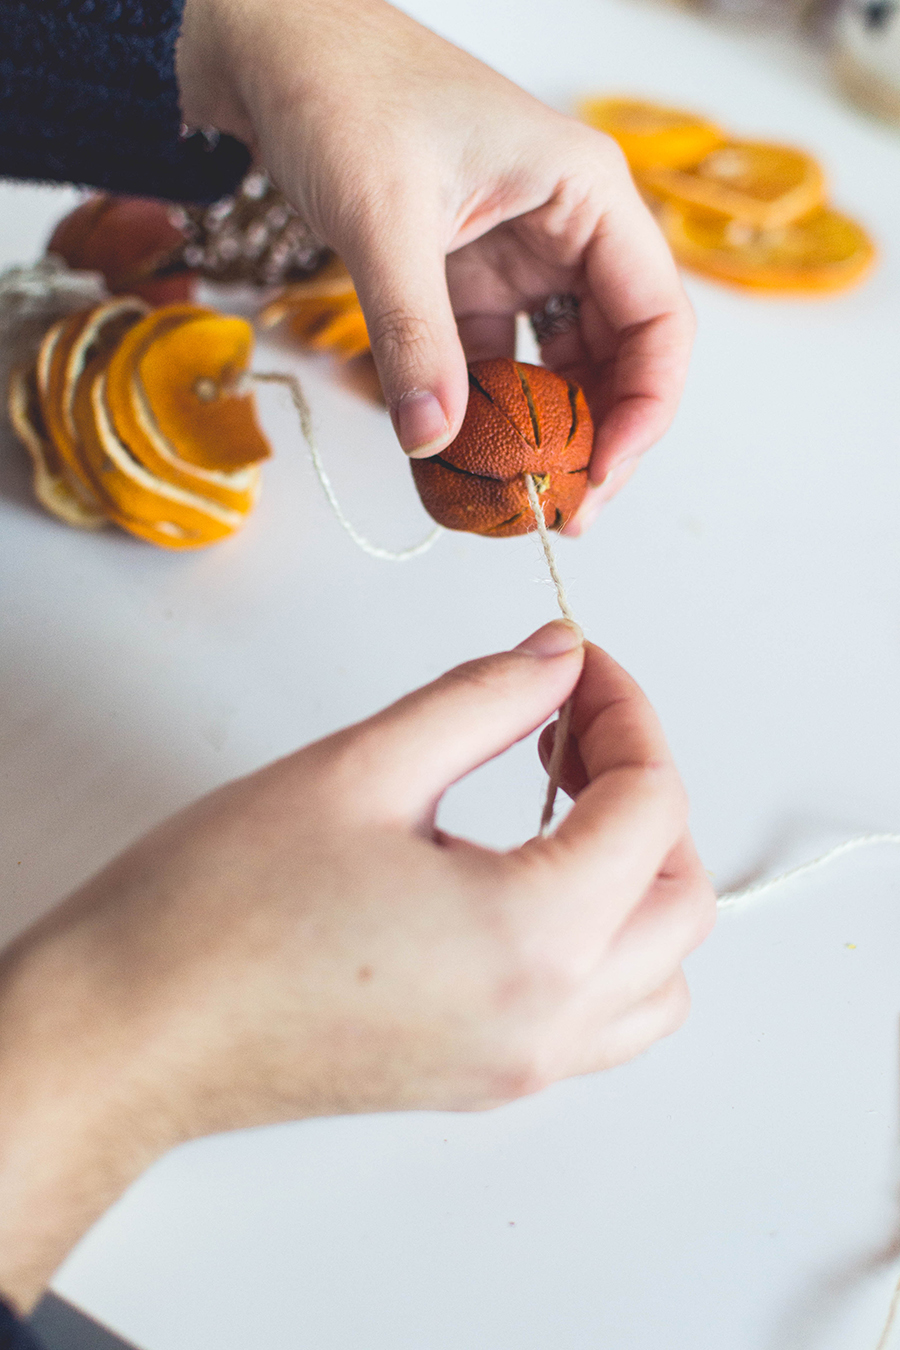 Add clementines to your DIY winter scented garland